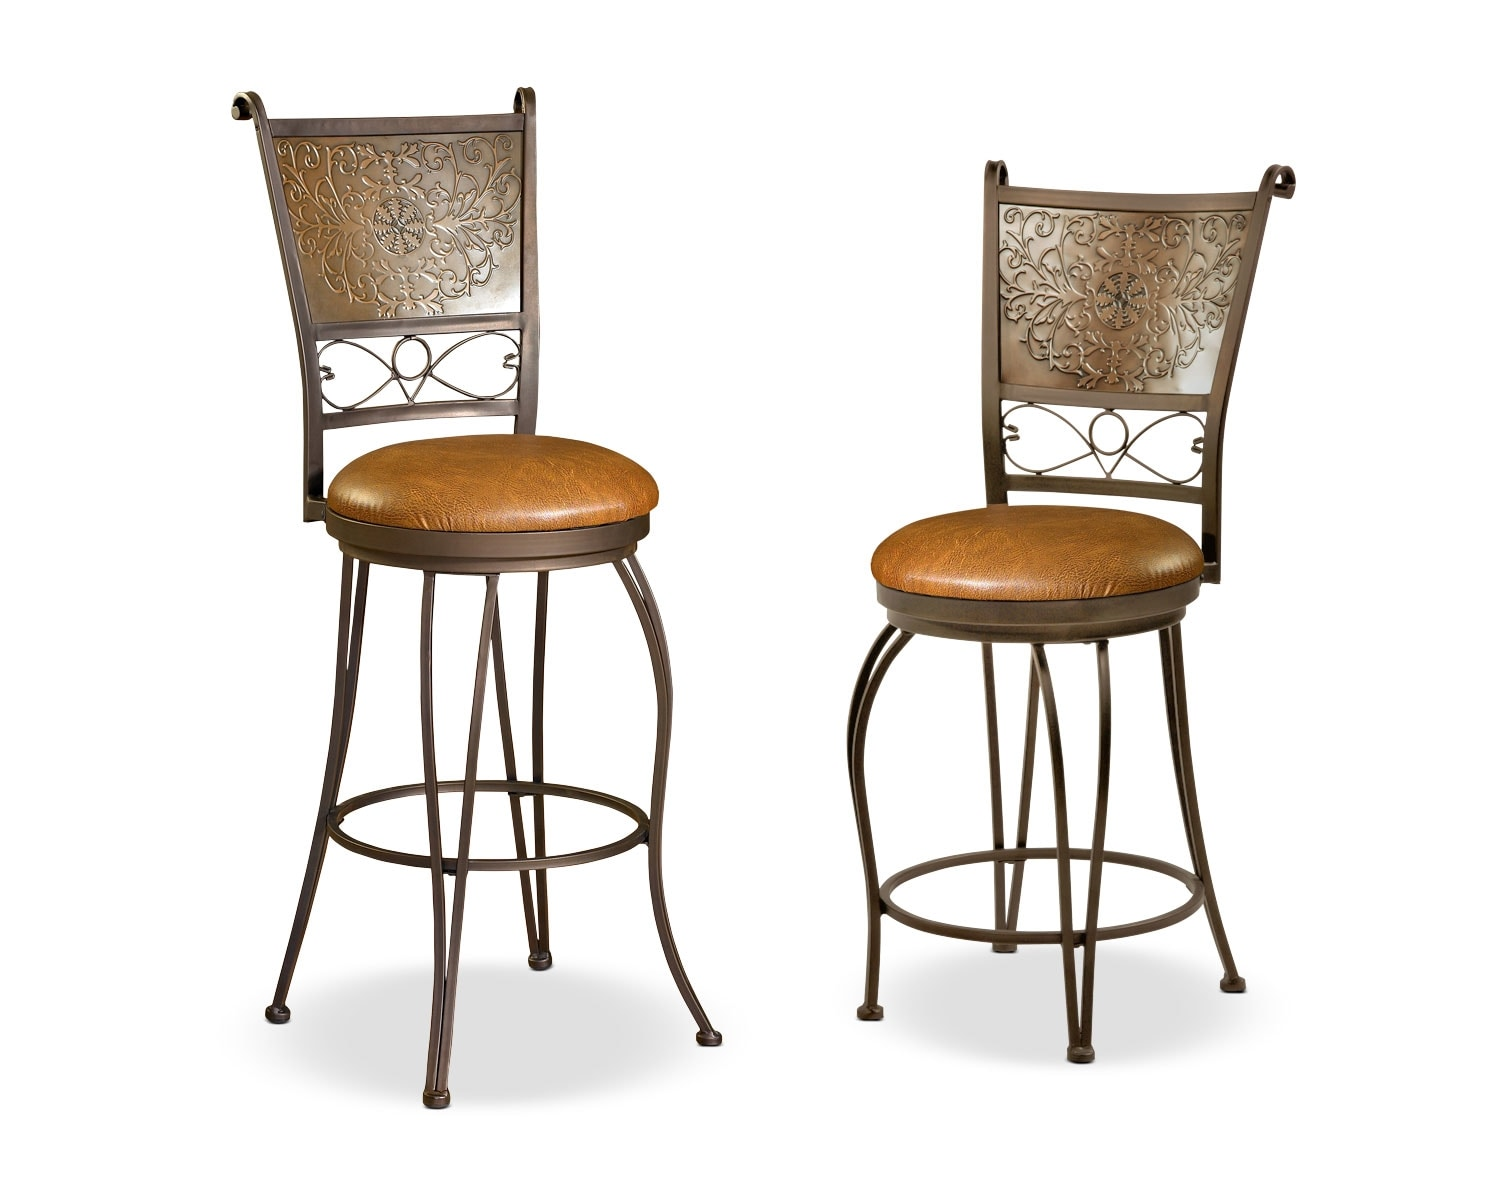 The Darby Barstool Collection